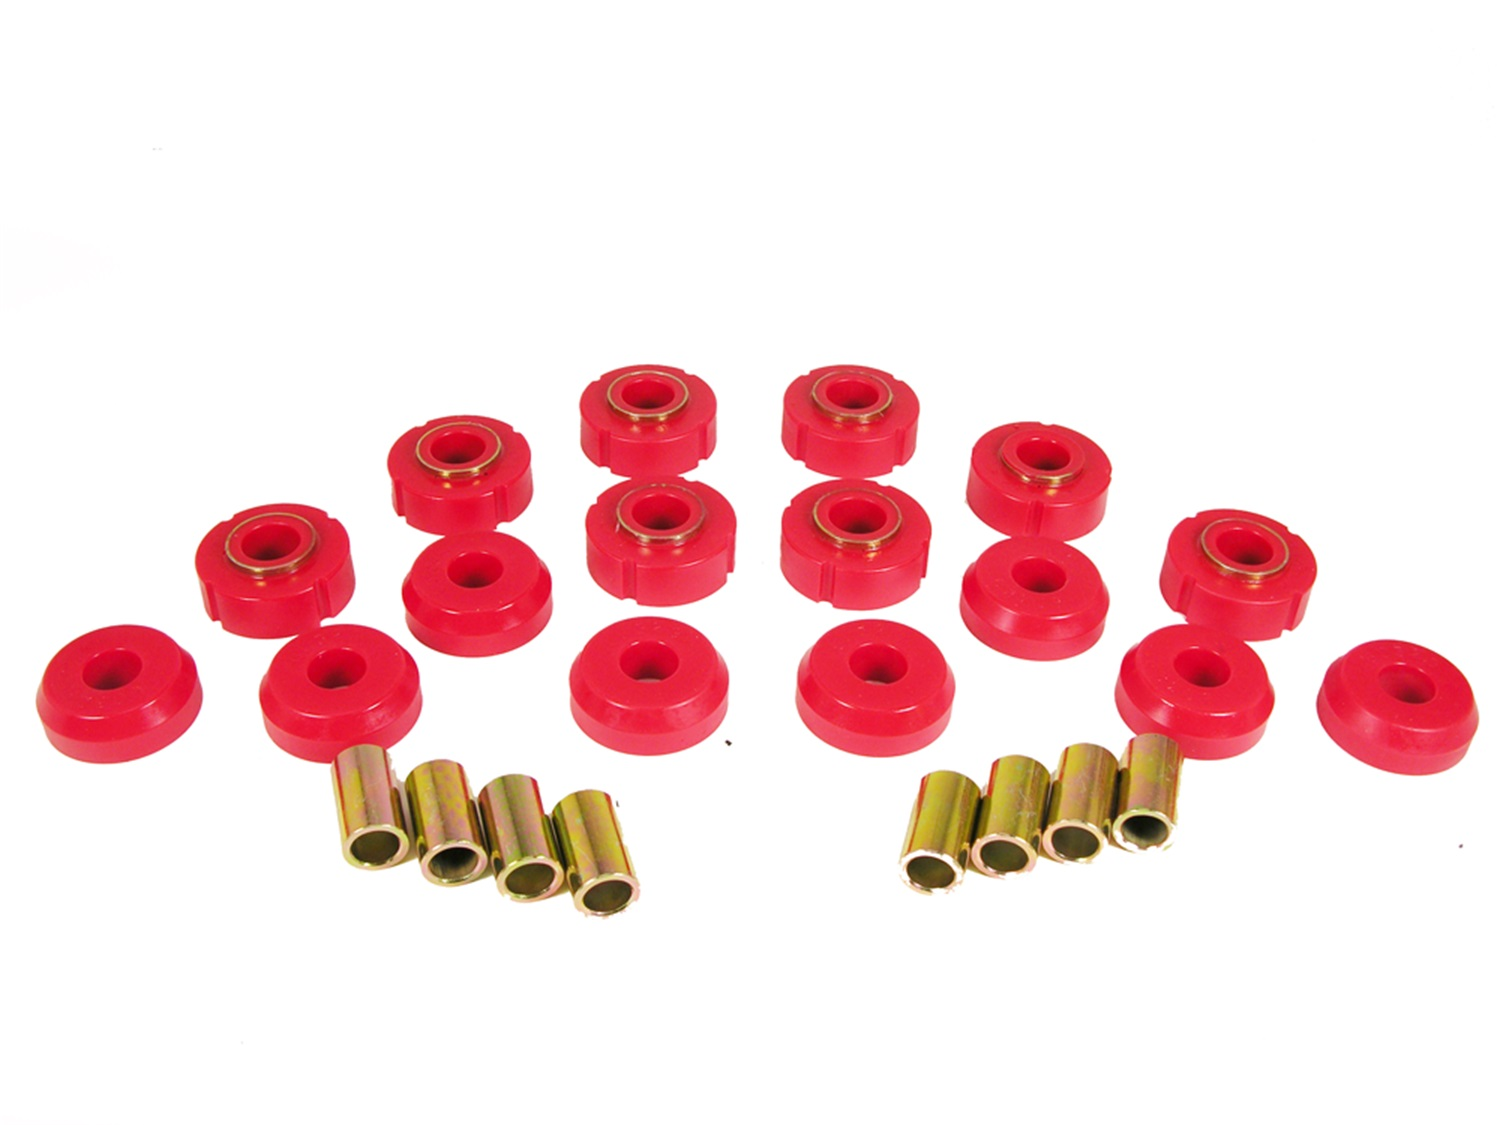 Prothane 9-101 Body Mount Kit  Red  16 pc. at Sears.com